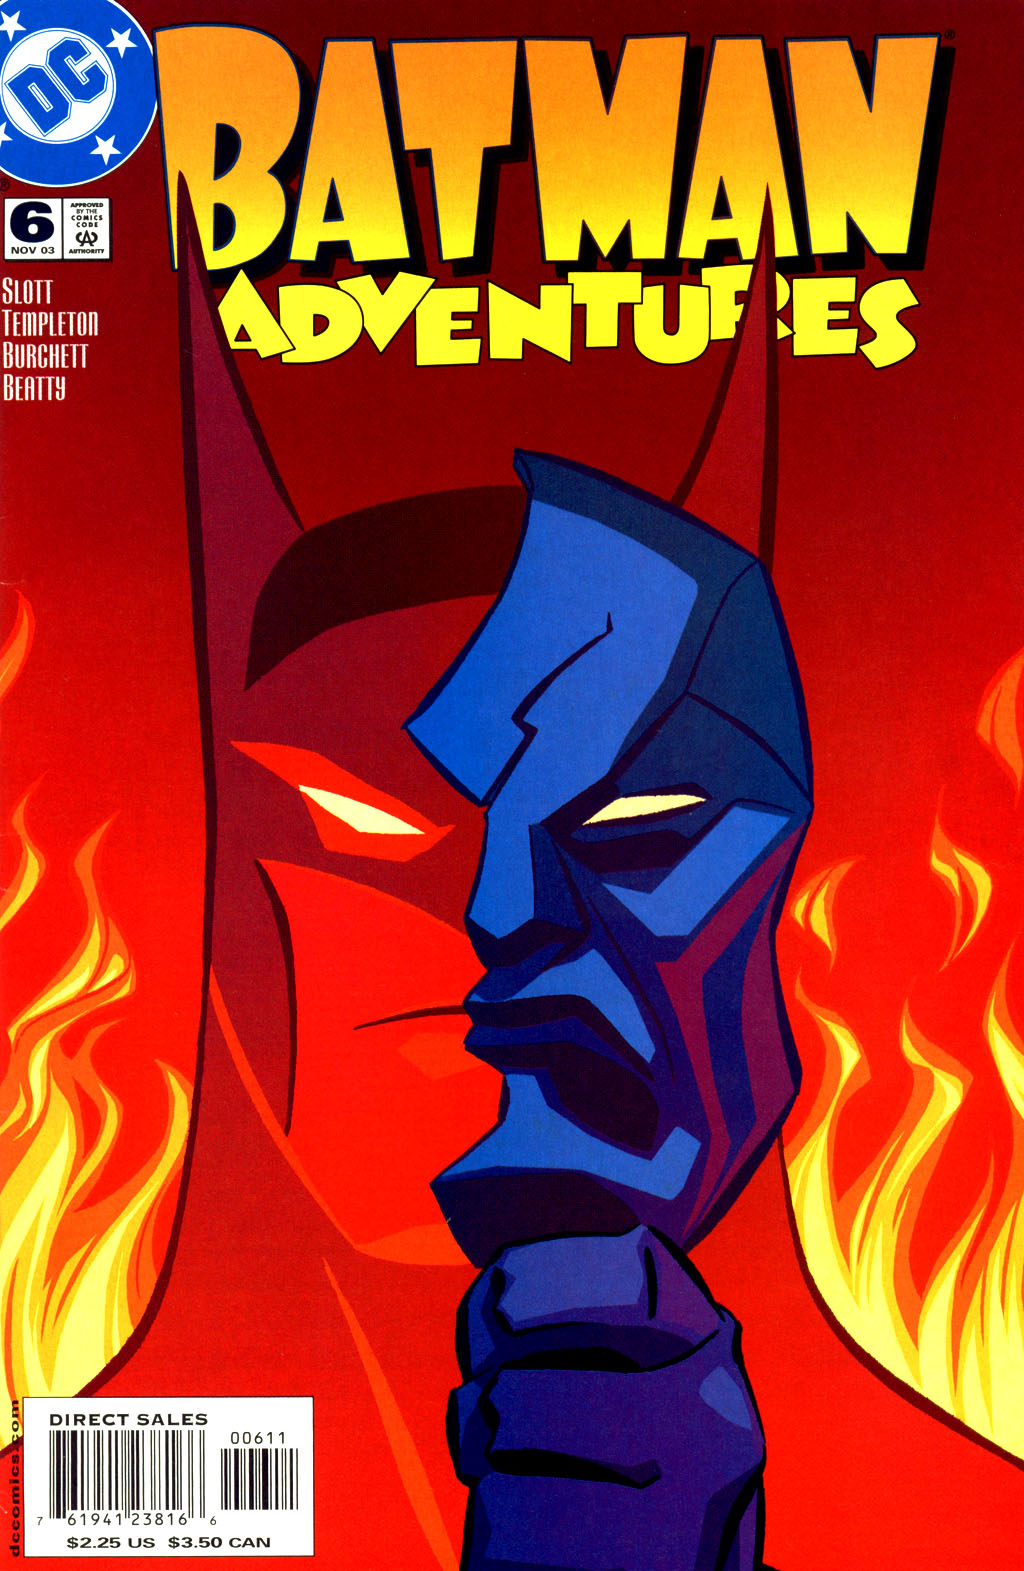 Batman Adventures (2003) 6 Page 1